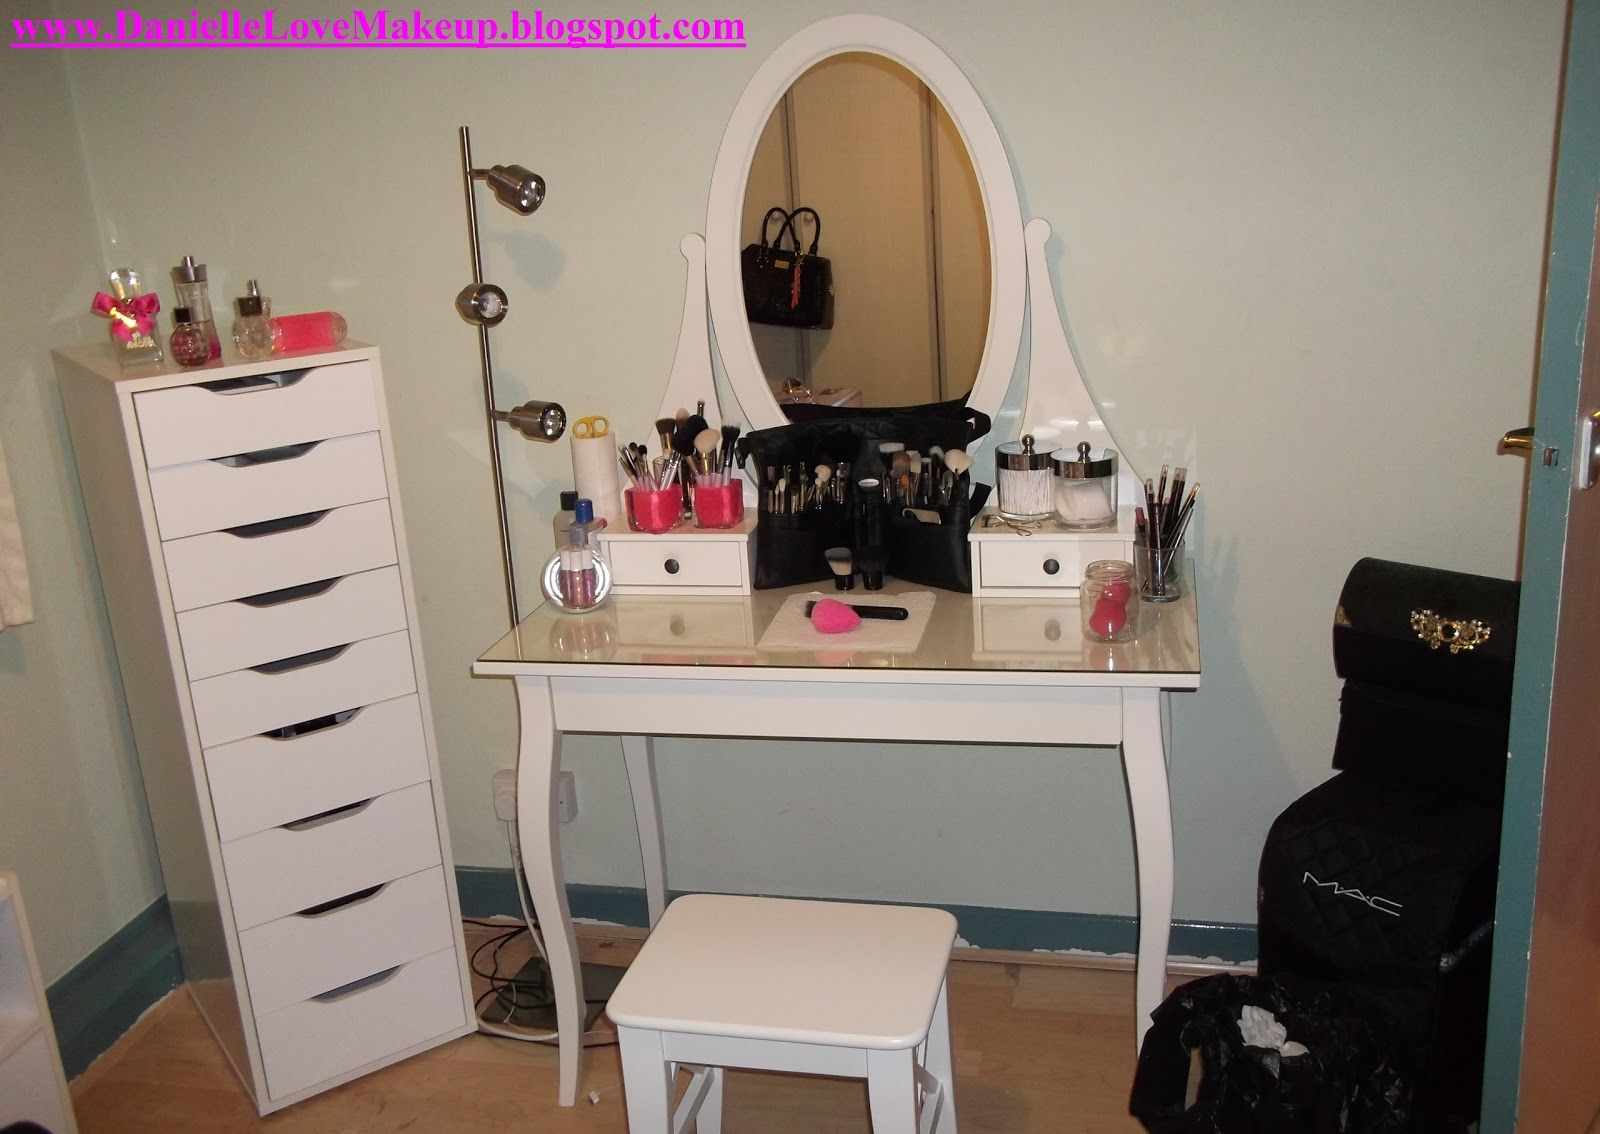 Ikea dressing table hemnes google search home ideas for Dressing room ideas ikea